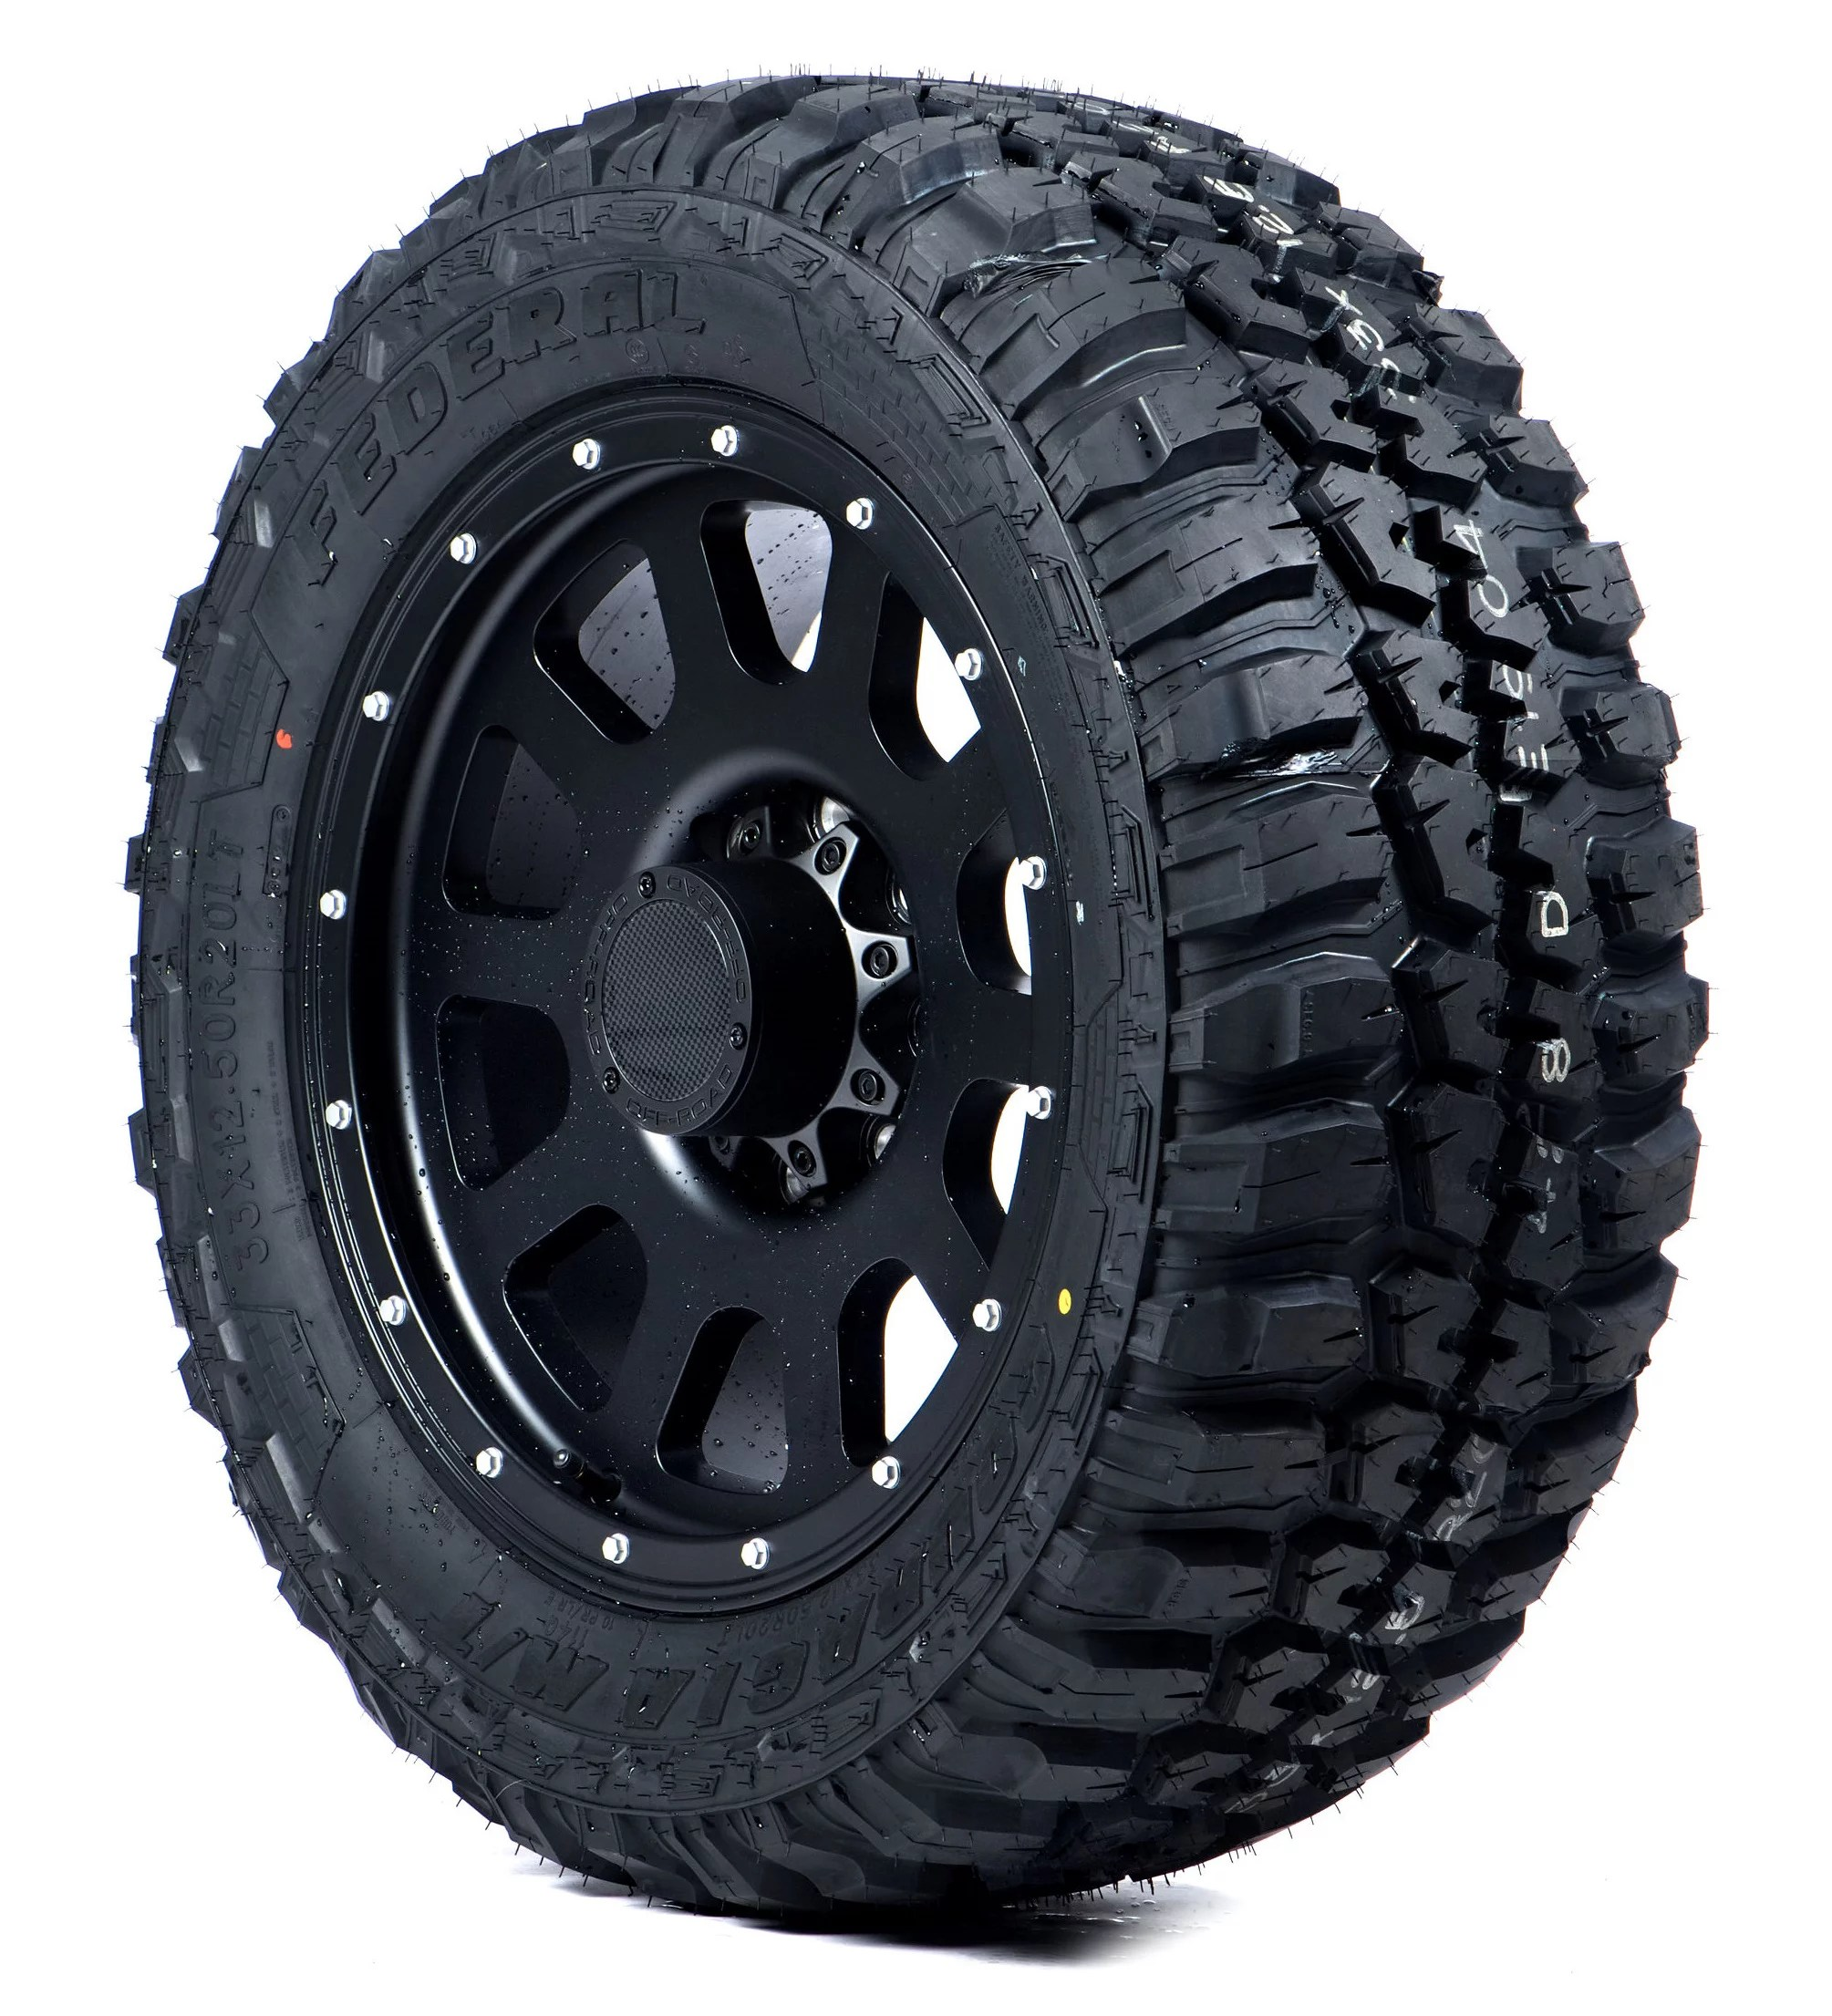 Federal Couragia M/T Mud-Terrain Tire – 33X12.50R20 E 10ply